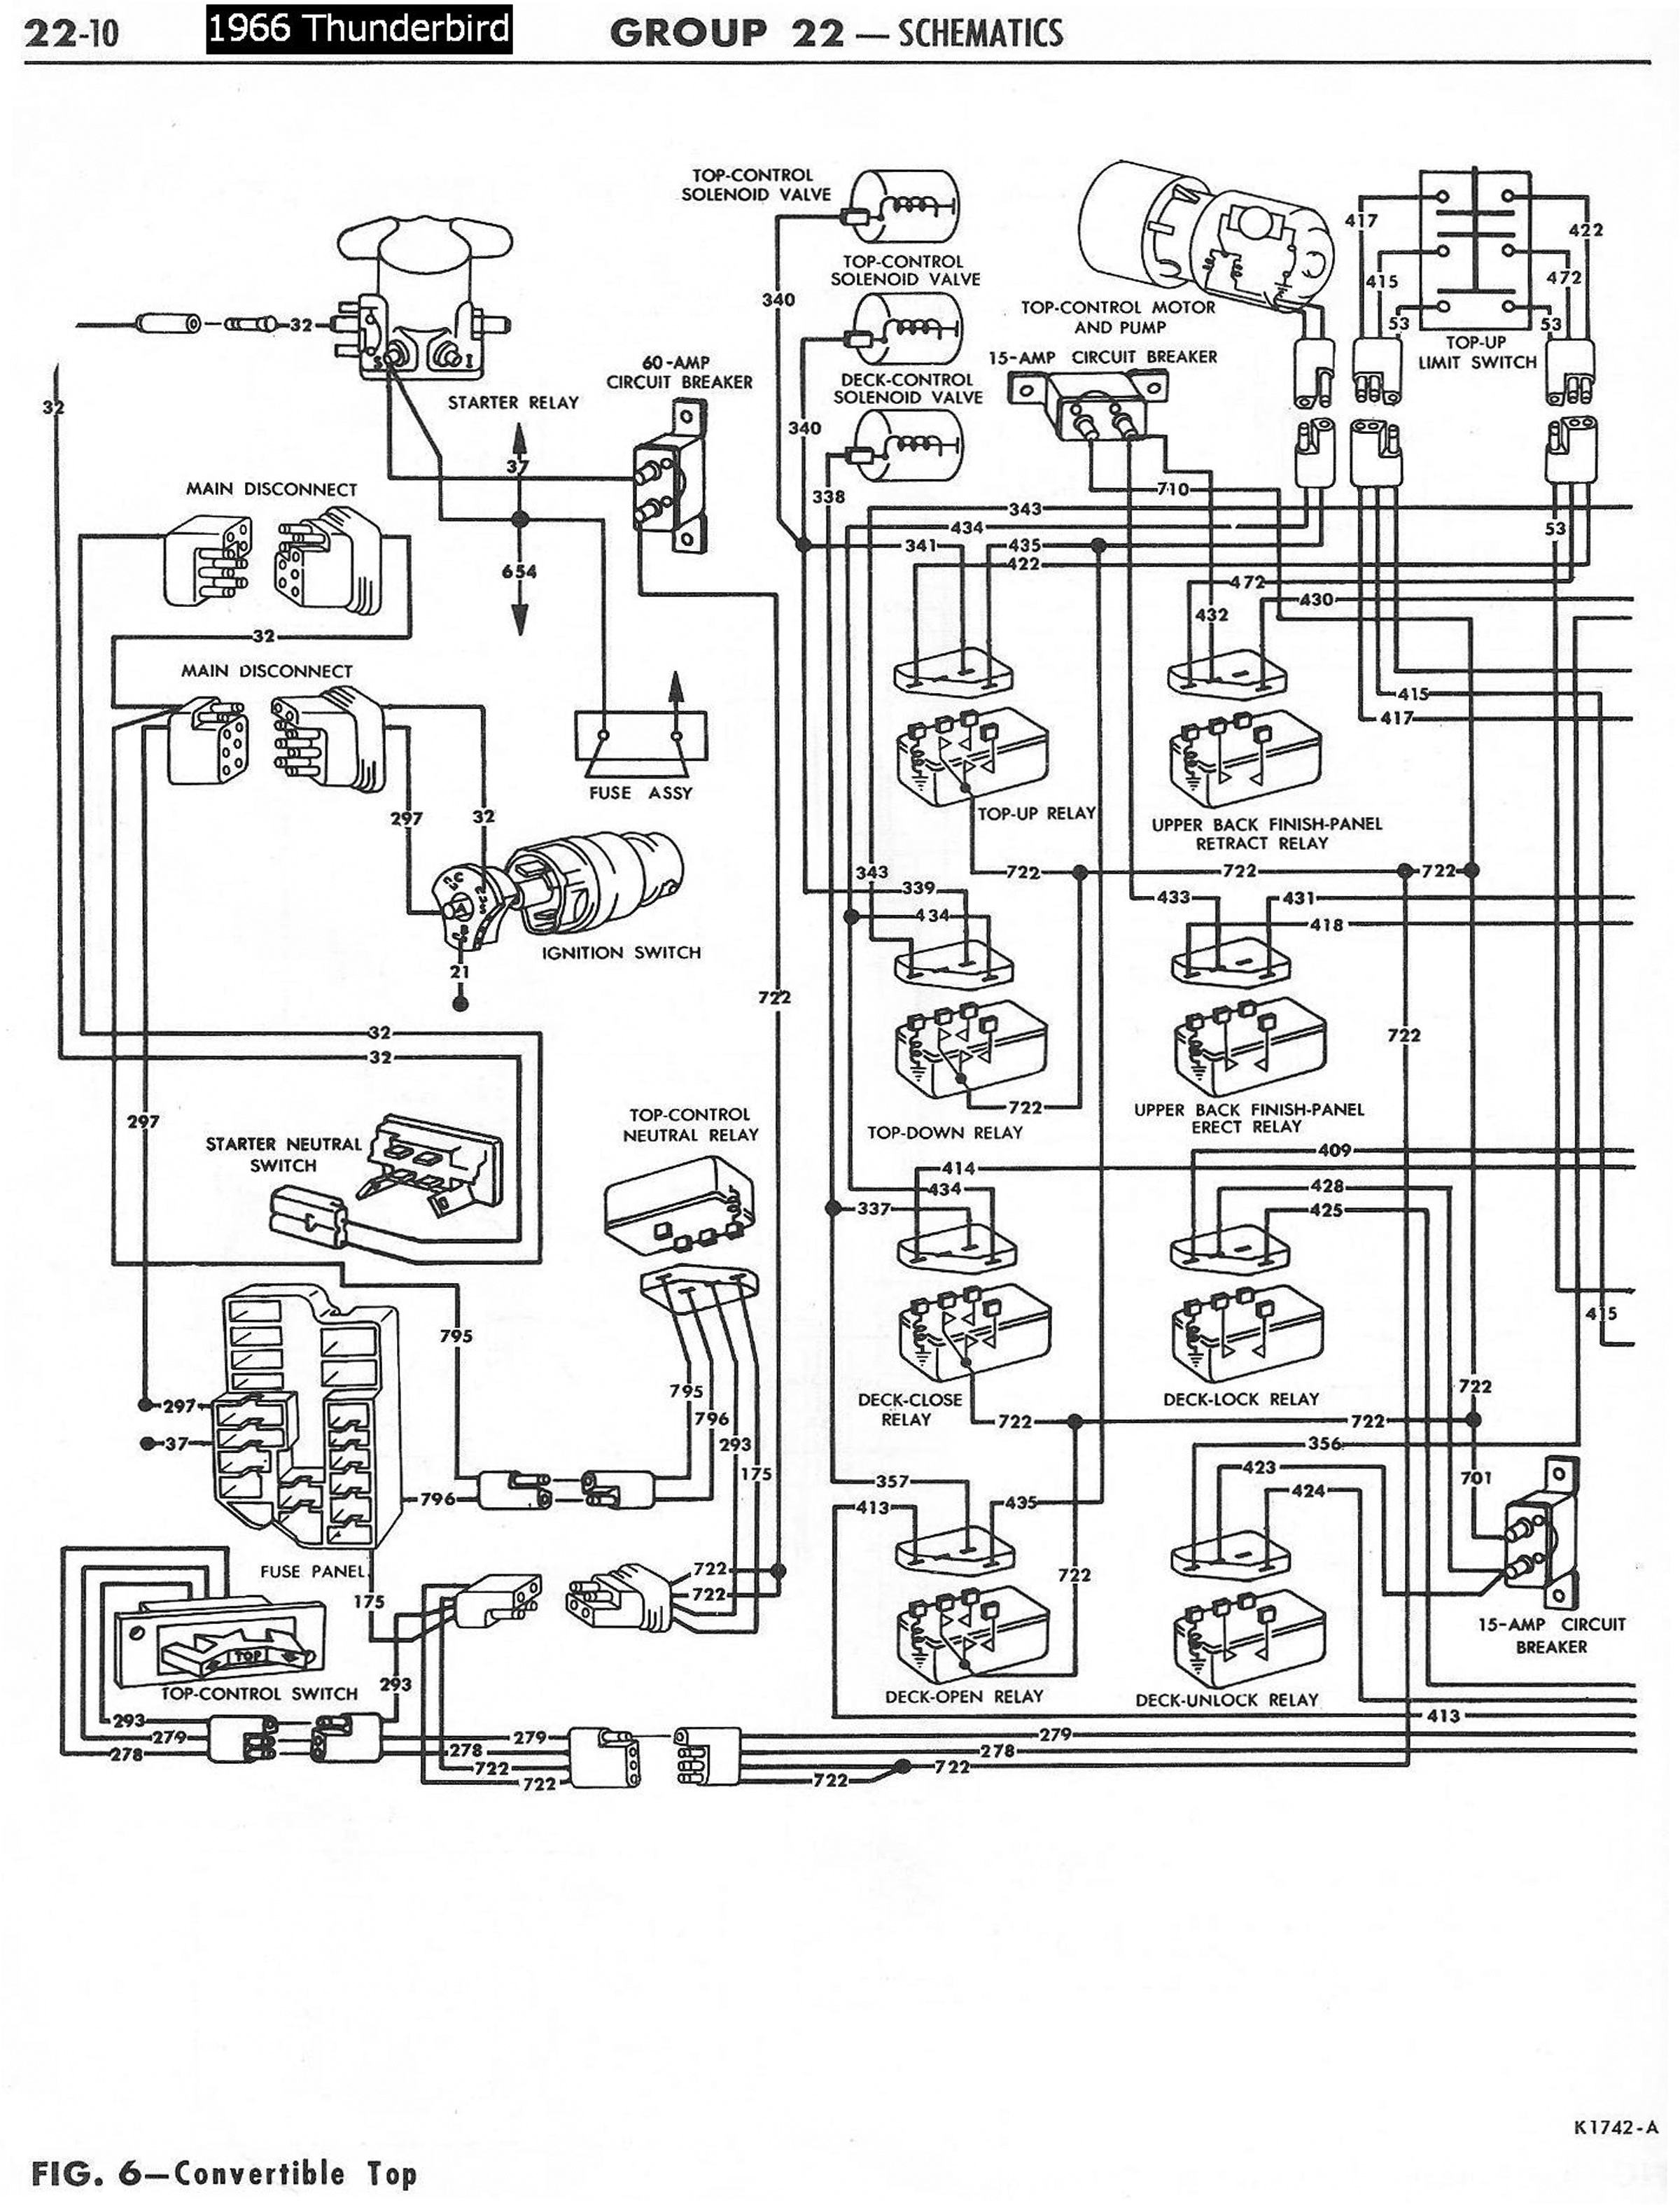 1968 Ford Turn Signal Wiring Diagram List Of Schematic Circuit For Mustang 1958 68 Electrical Schematics Rh Squarebirds Org